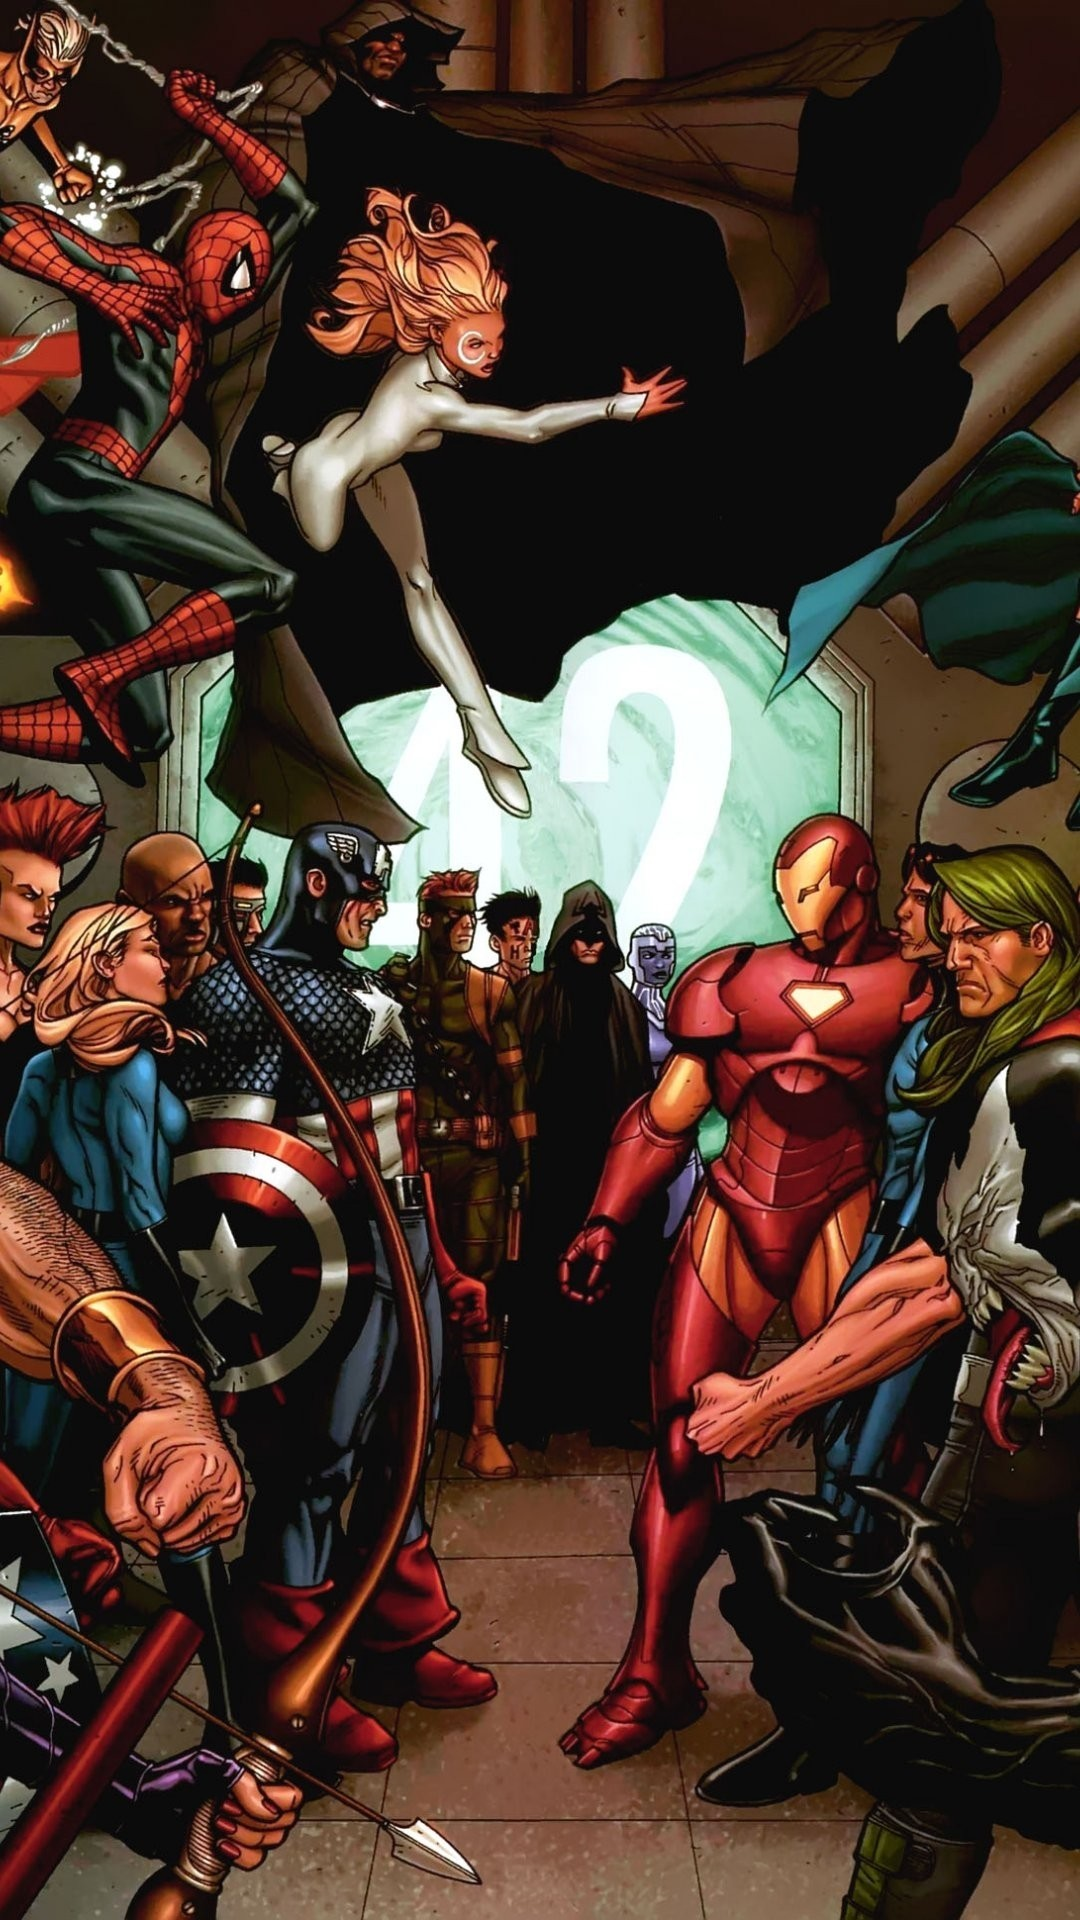 … marvel iphone wallpaper best images collections hd for gadget …